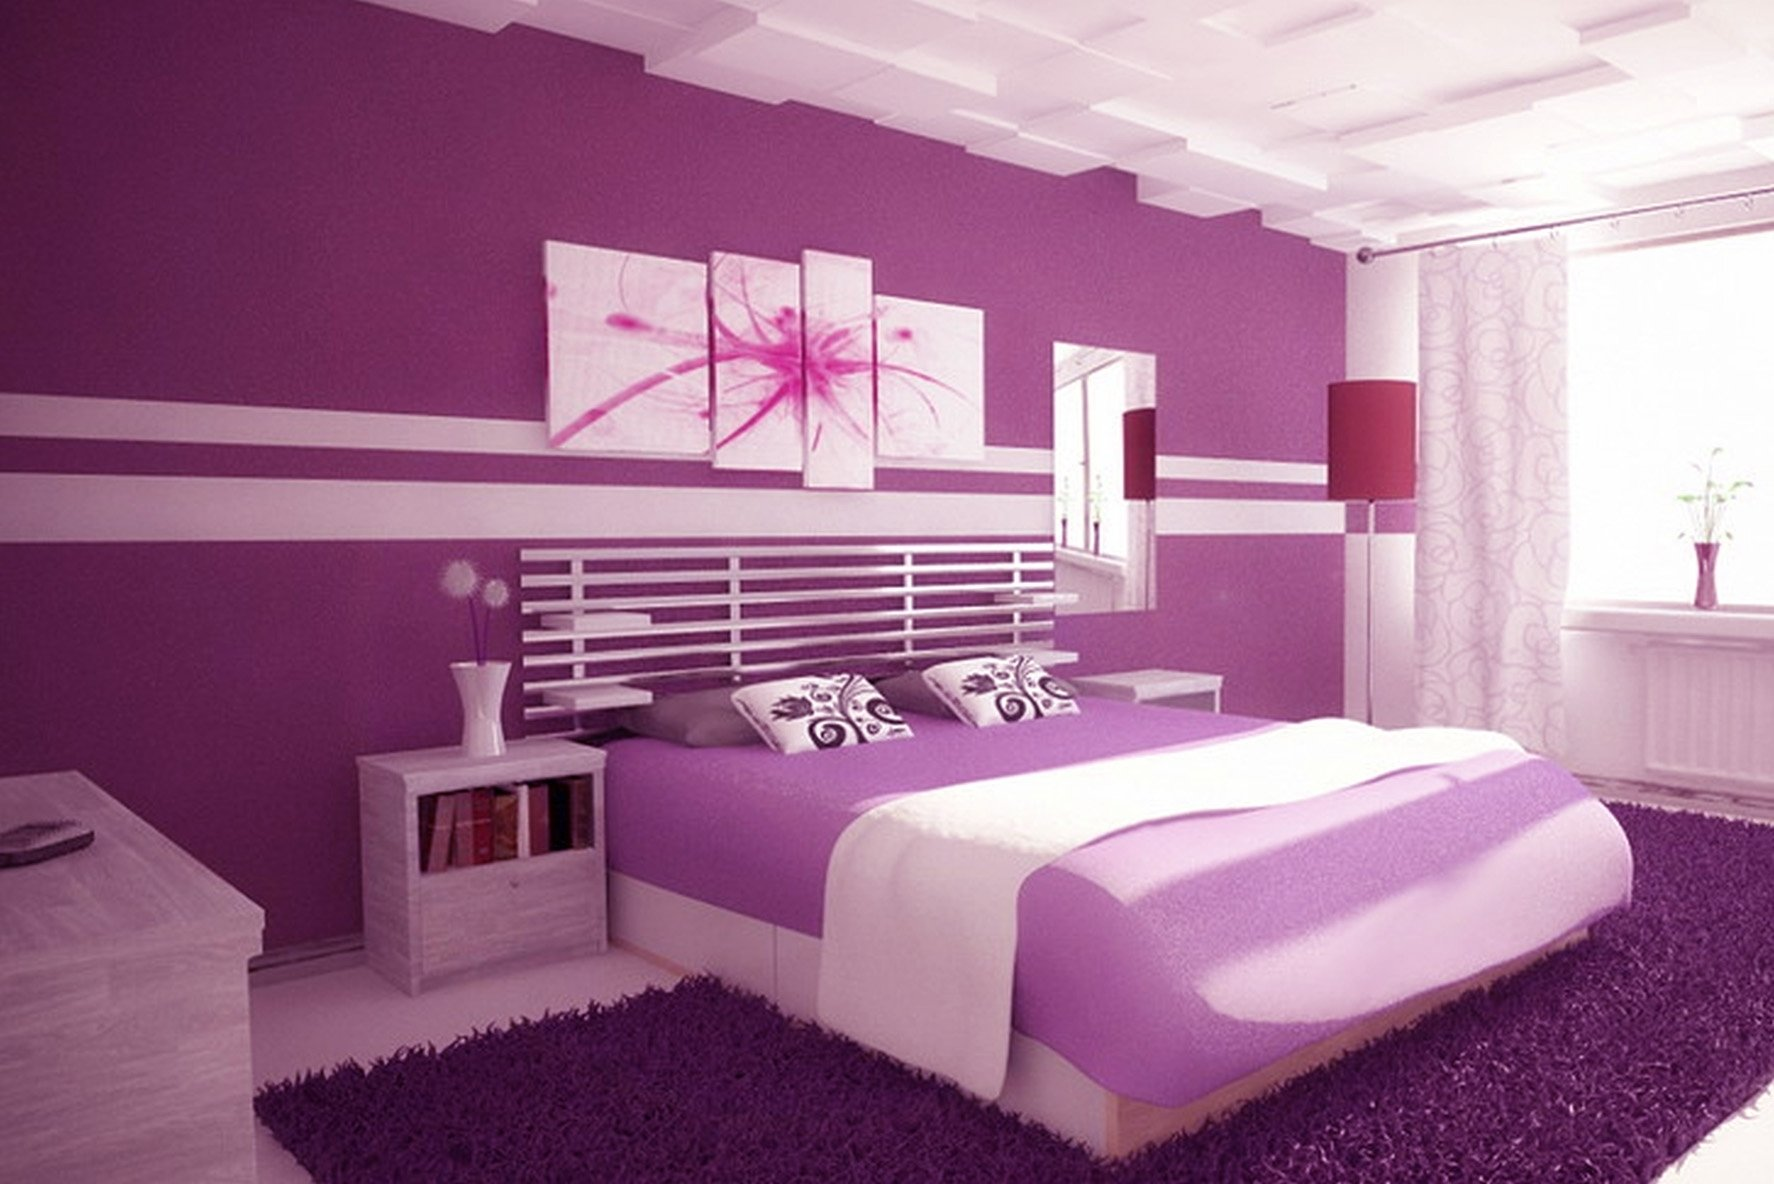 10 Lovely Pink And Purple Room Ideas elegant purple walls bedroom chocoaddicts chocoaddicts 1 2020